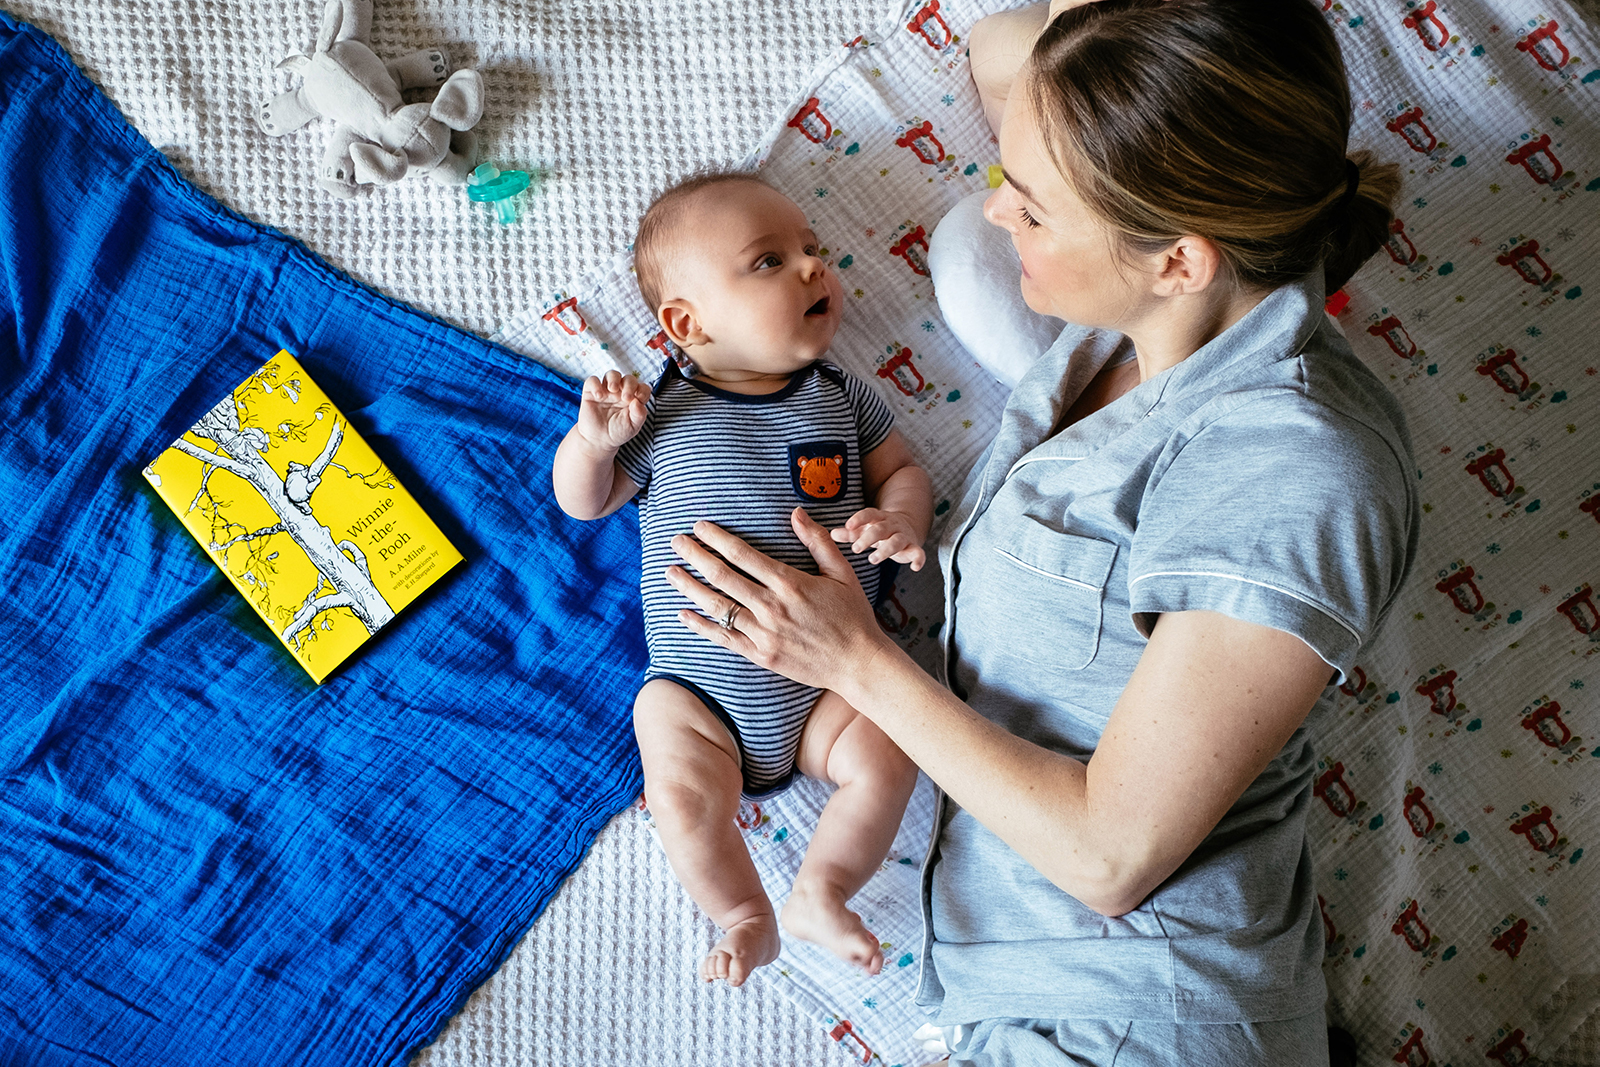 4 Tips From My First Few Months of Motherhood - don't be anxious to set a schedule too early